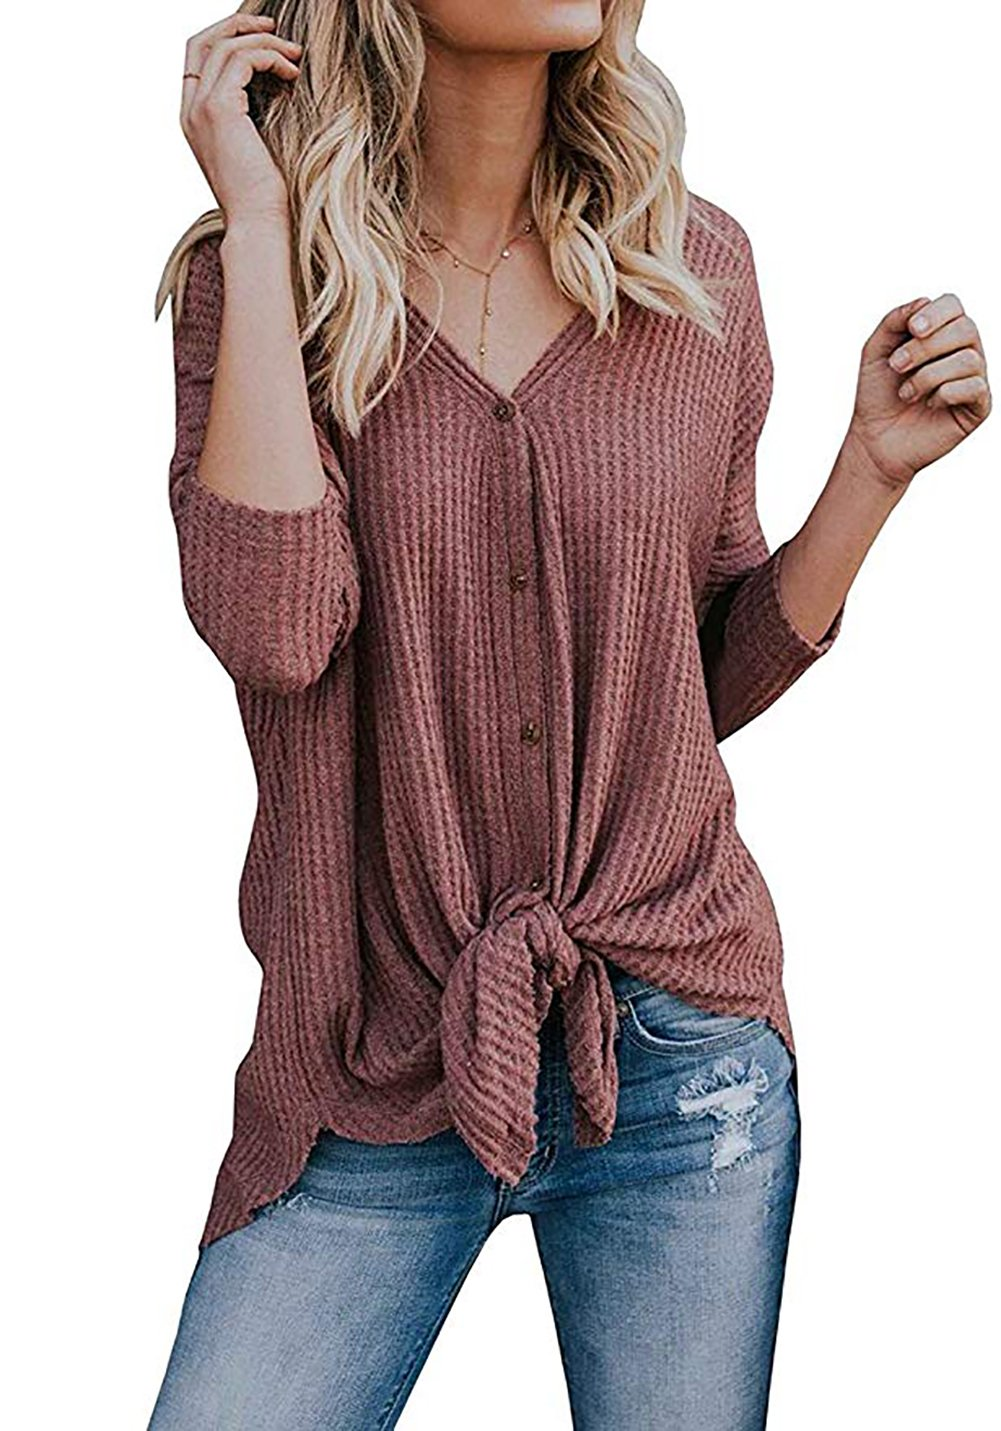 Chvity Long Sleeve Loose Fit Tops Ribbed Knit Tie Knot V Neck Button Front Shirts (Large, Rust Red)